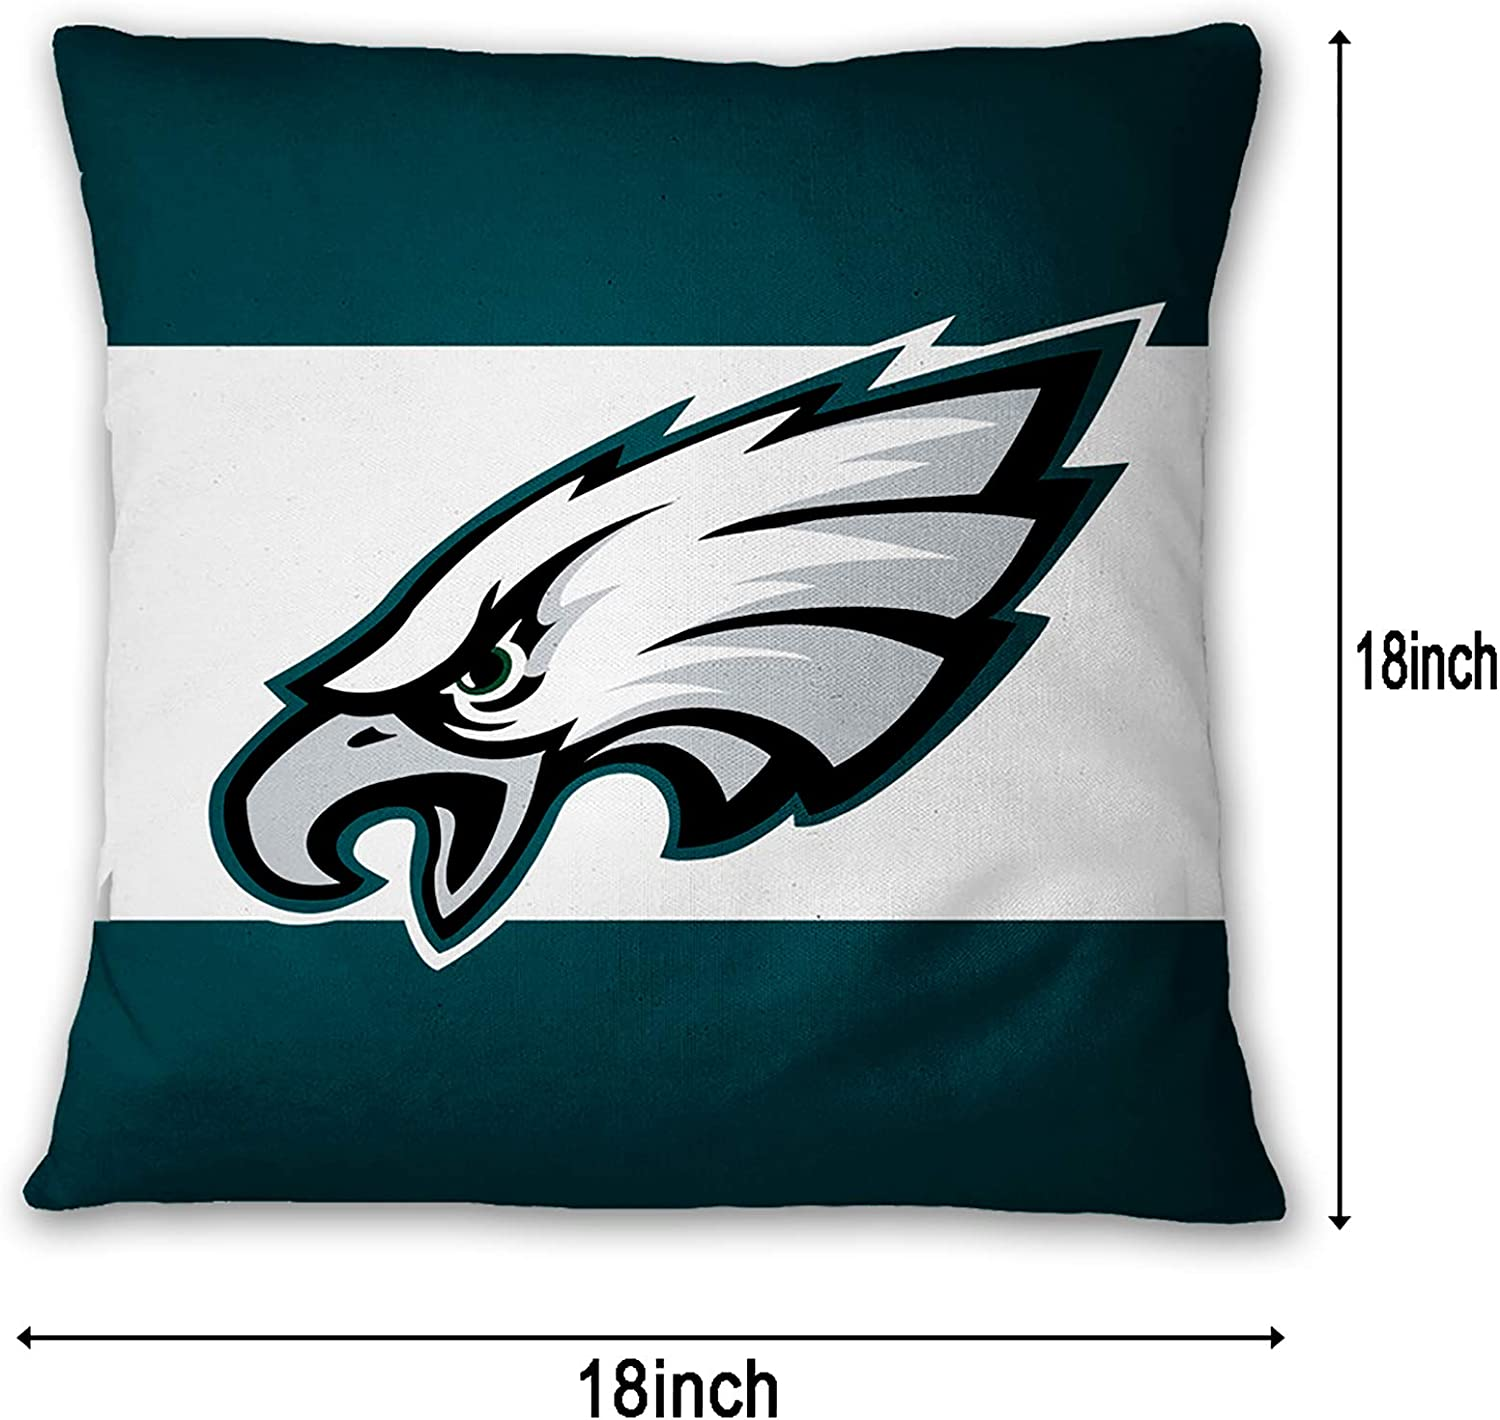 Deztibos Throw Pillow Covers Super Bowl Pillowslip Football Team Pillow Protecter Soft Square Pillowcase With Hidden Zipper For Home Decor Sofa Car 18 X18inches Eagles Sports Outdoors Fan Shop